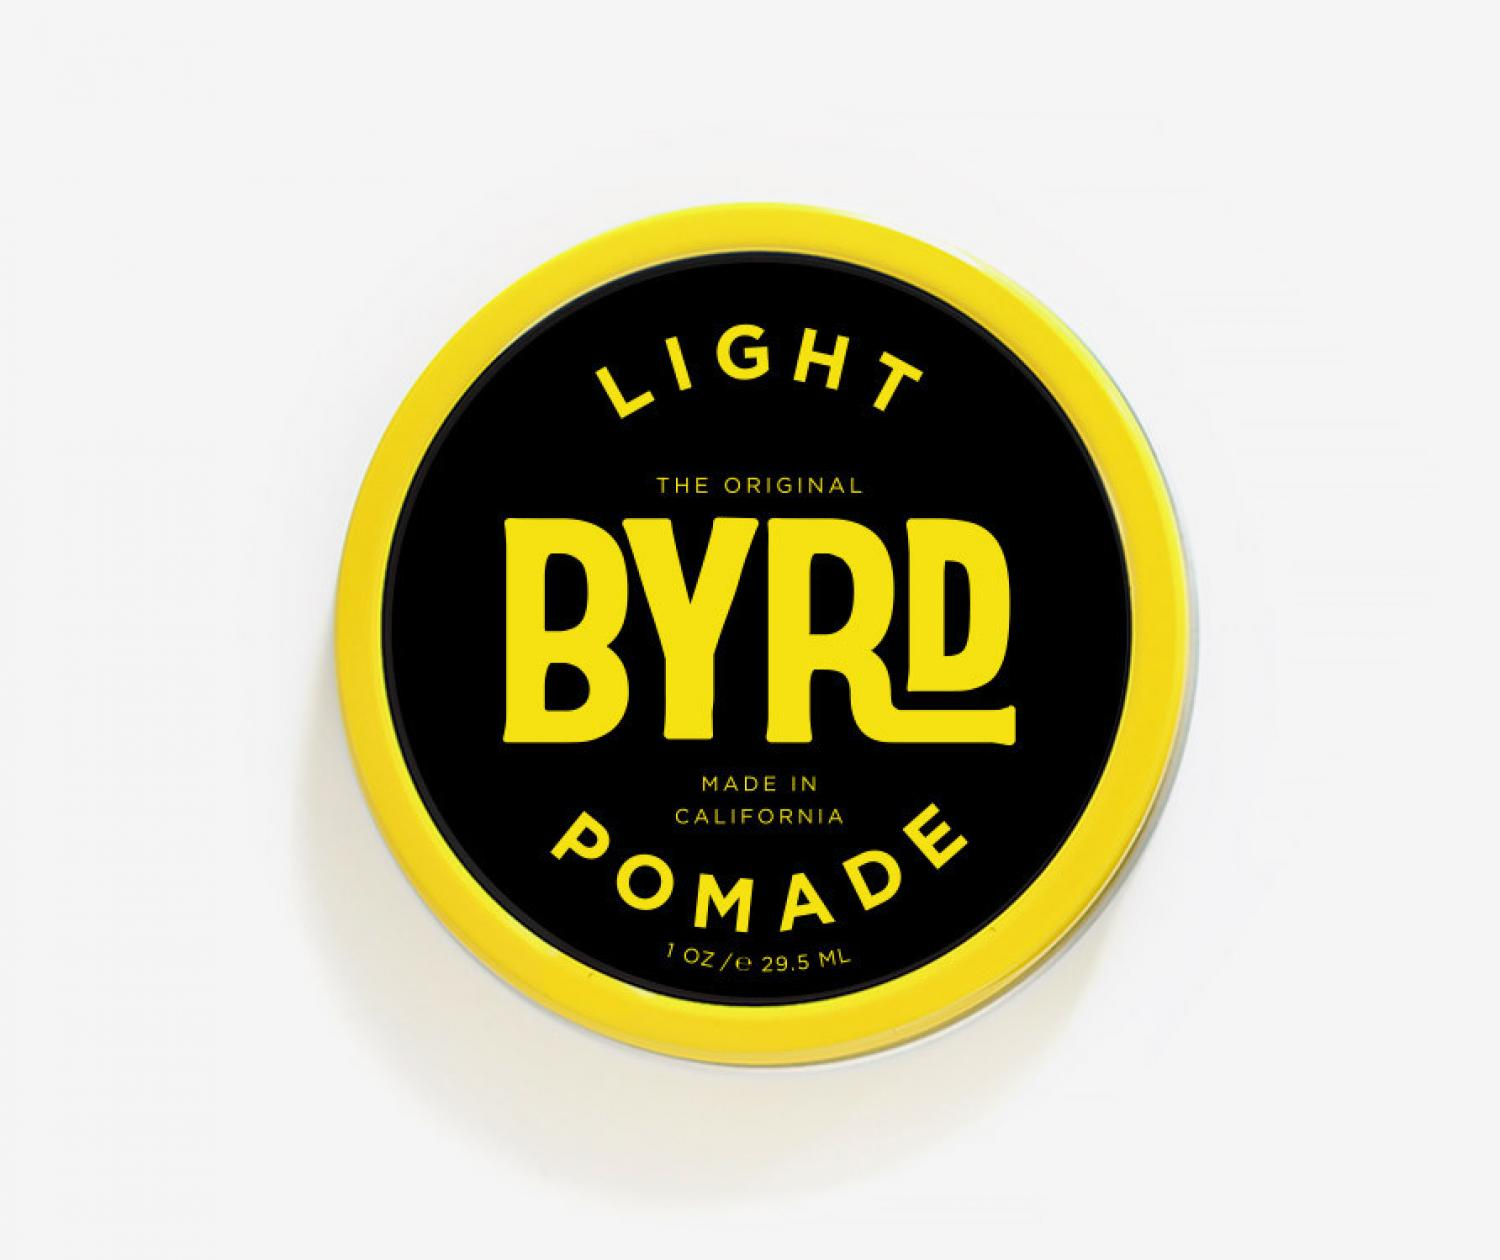 BYRD POMADE LIGHT The Free Ehukai Beach 28g